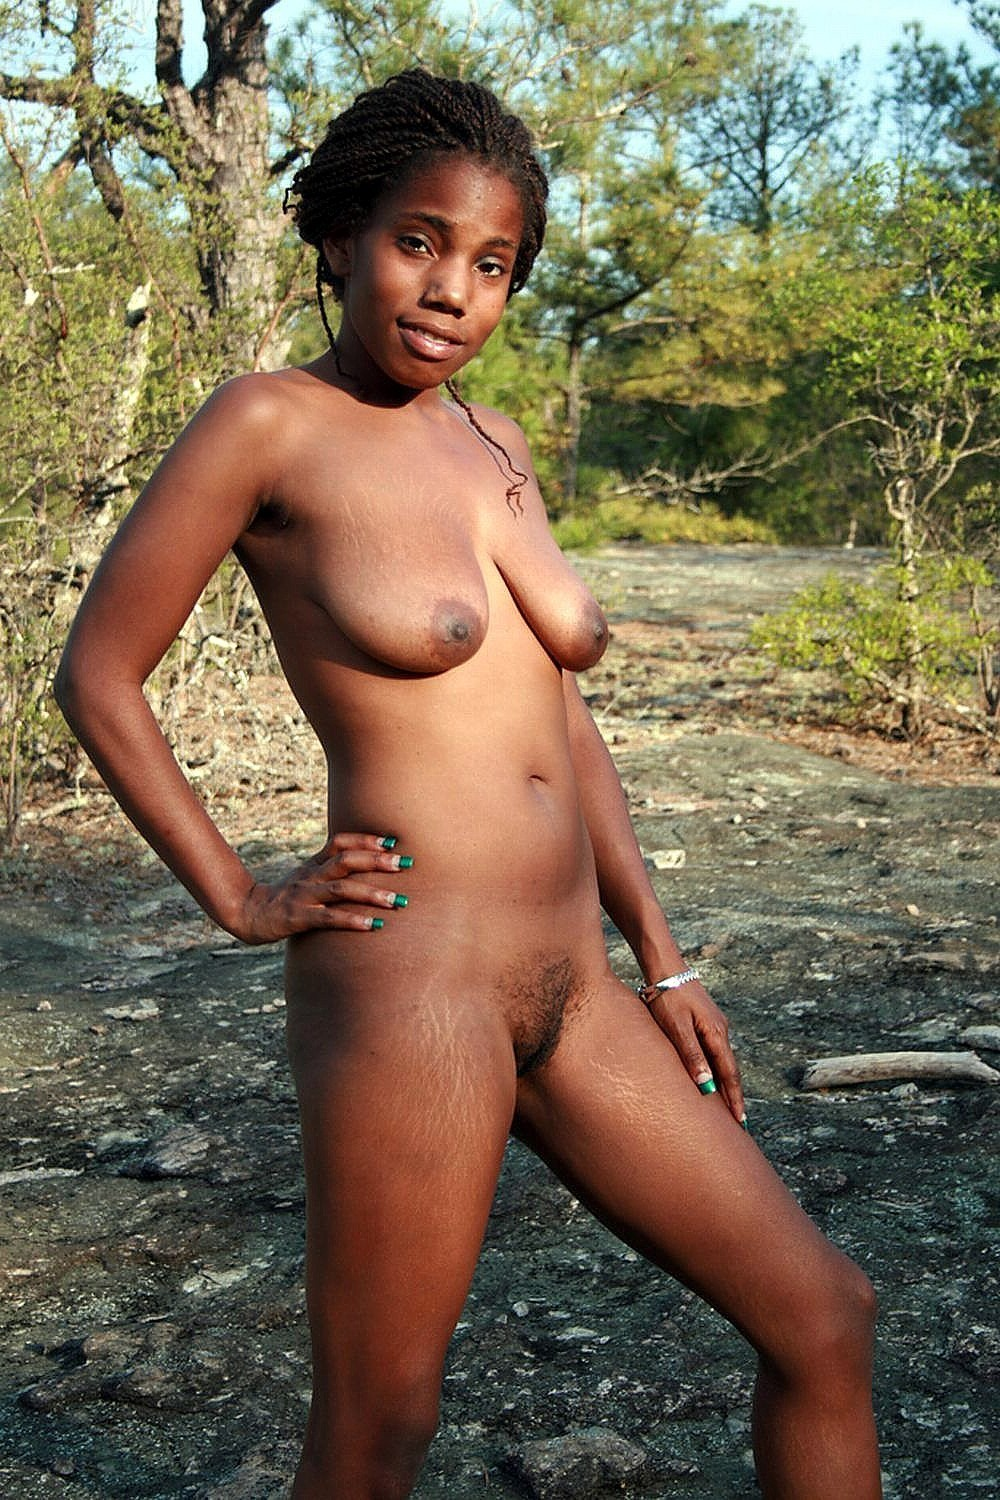 Virgin african girls naked — photo 9